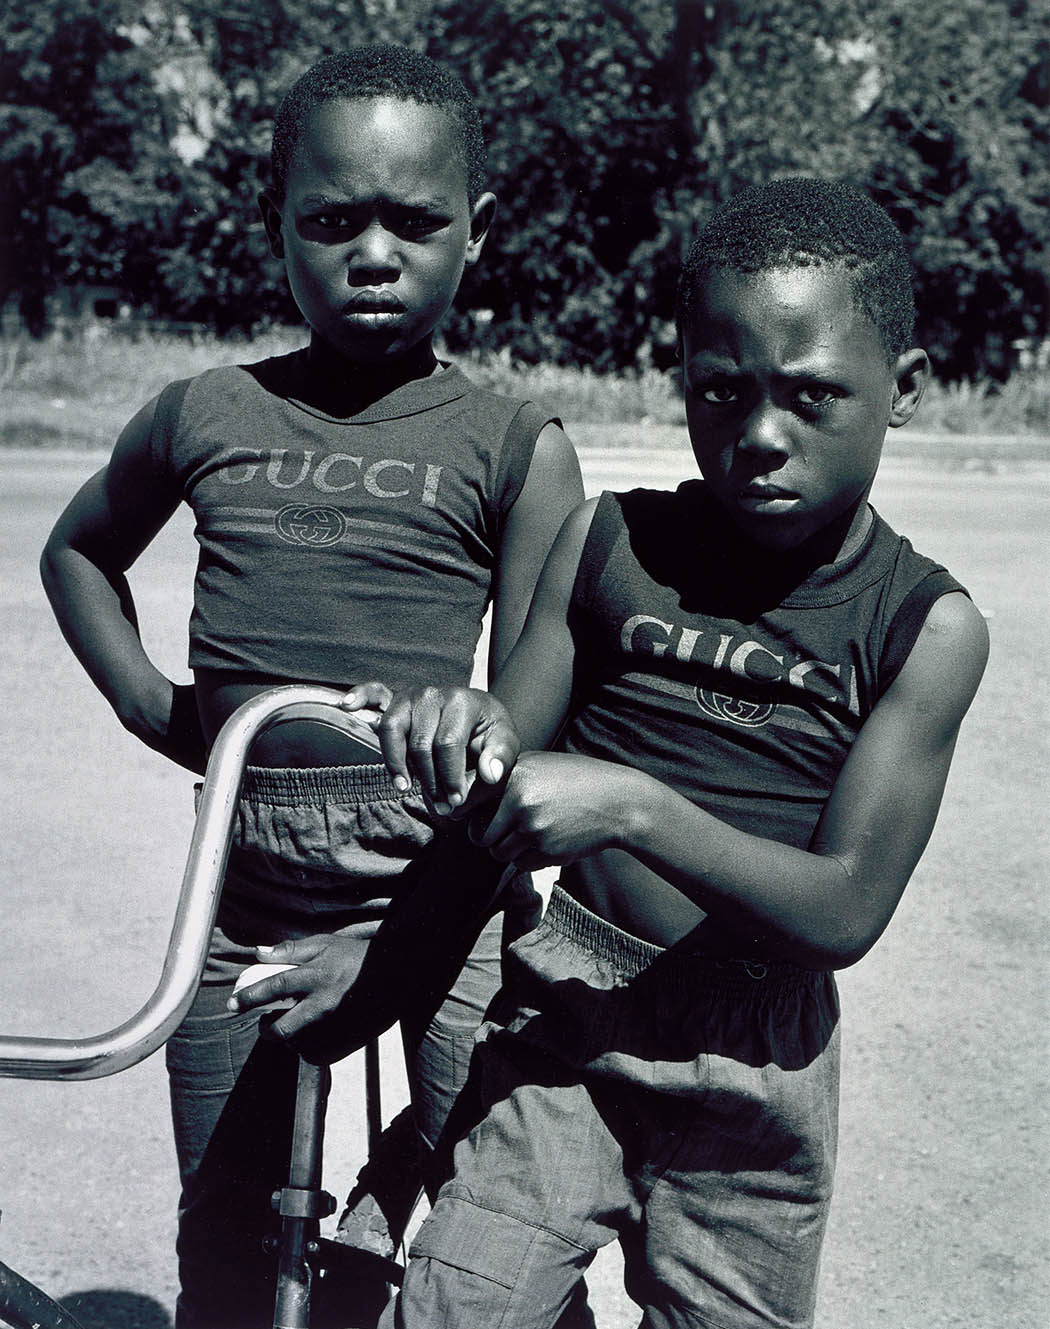 lostinurbanism: Gucci Brother's by Earlie Hudnall Jr. Look at us.